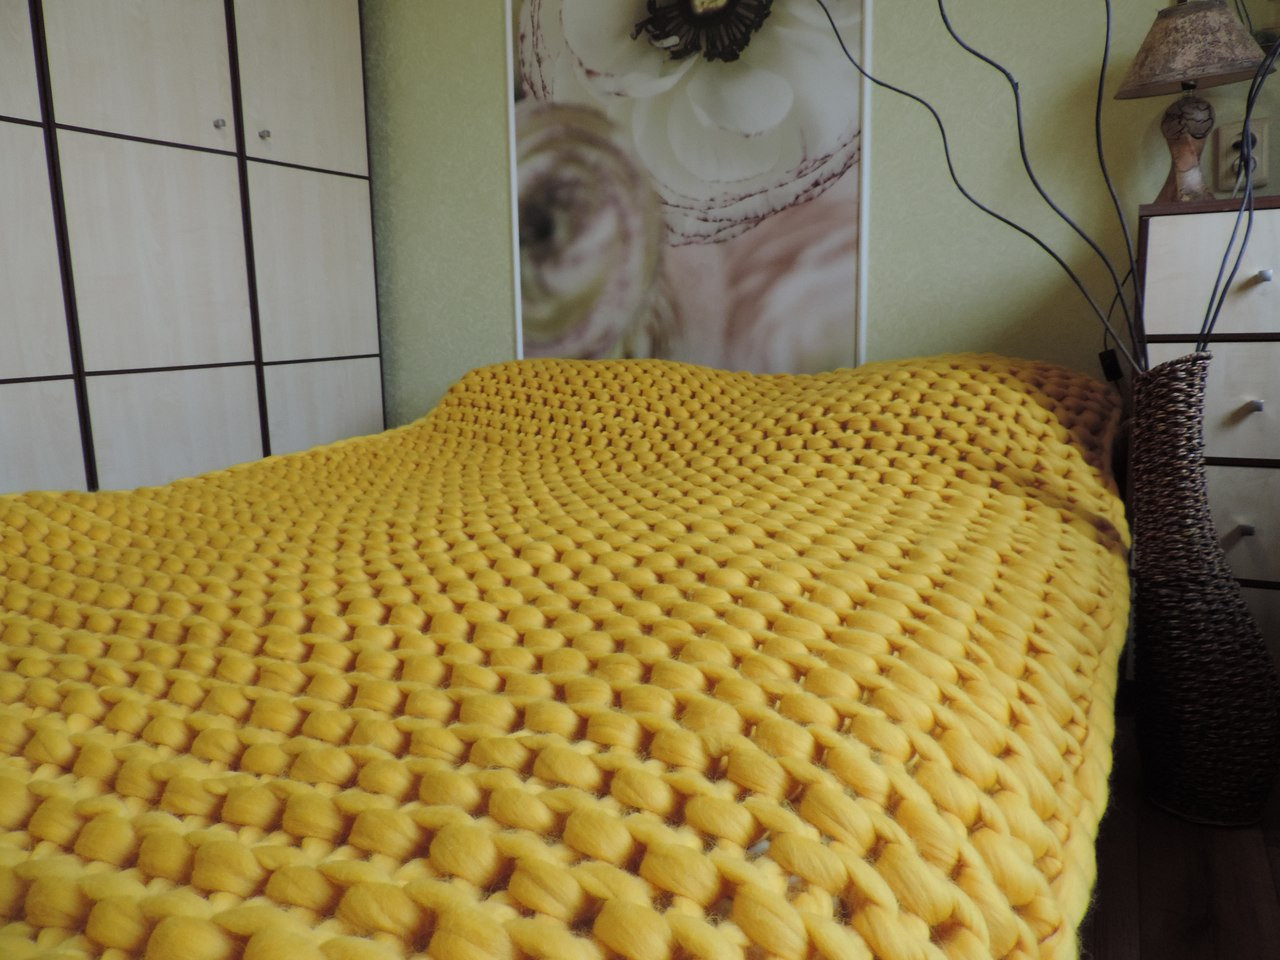 Best Of Promo Price Chunky Knit Blanket Knitted Blanket Wool Chunky Knit Wool Blanket Of Adorable 43 Photos Chunky Knit Wool Blanket